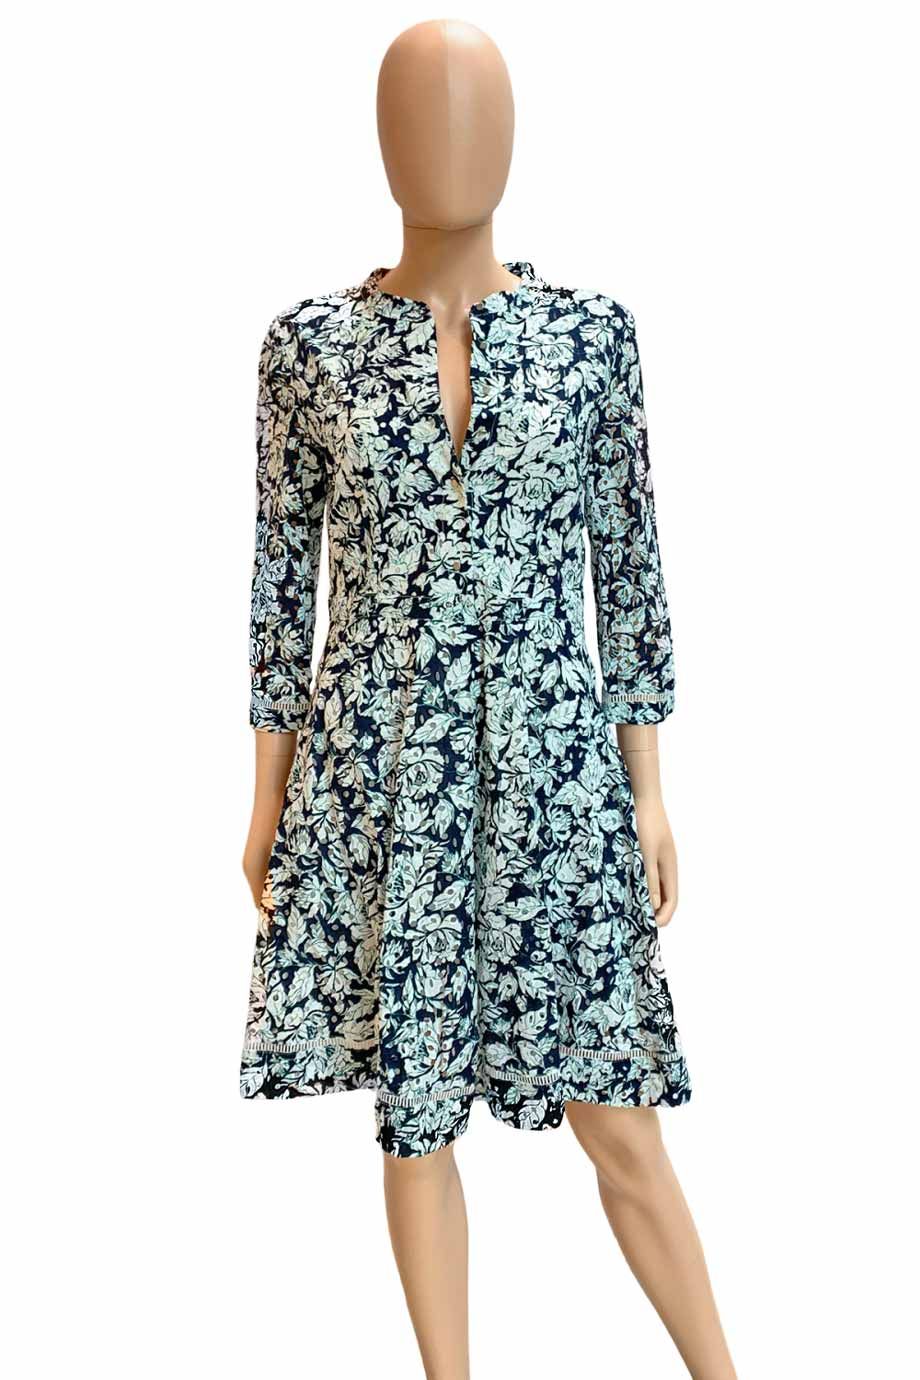 Suncoo Navy Multi Floral Print Cotton Eyelet Mini Dress / Sz T2